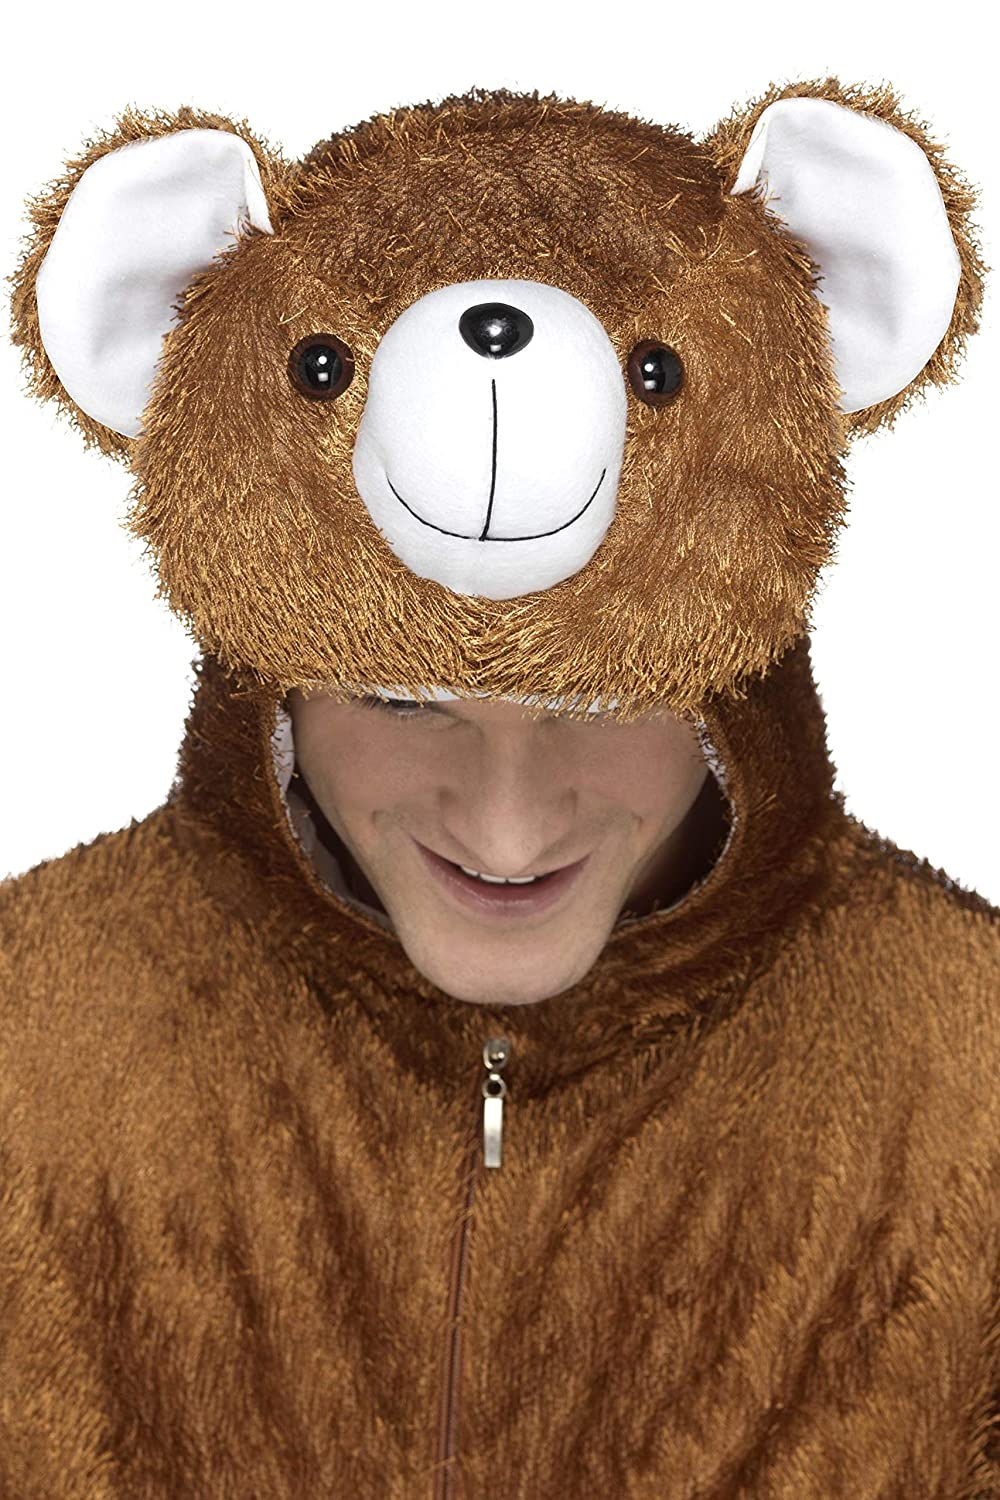 ef27361640c Amazon.com  Smiffy s Men s Bear Costume Includes Jumpsuit with Hood   Clothing